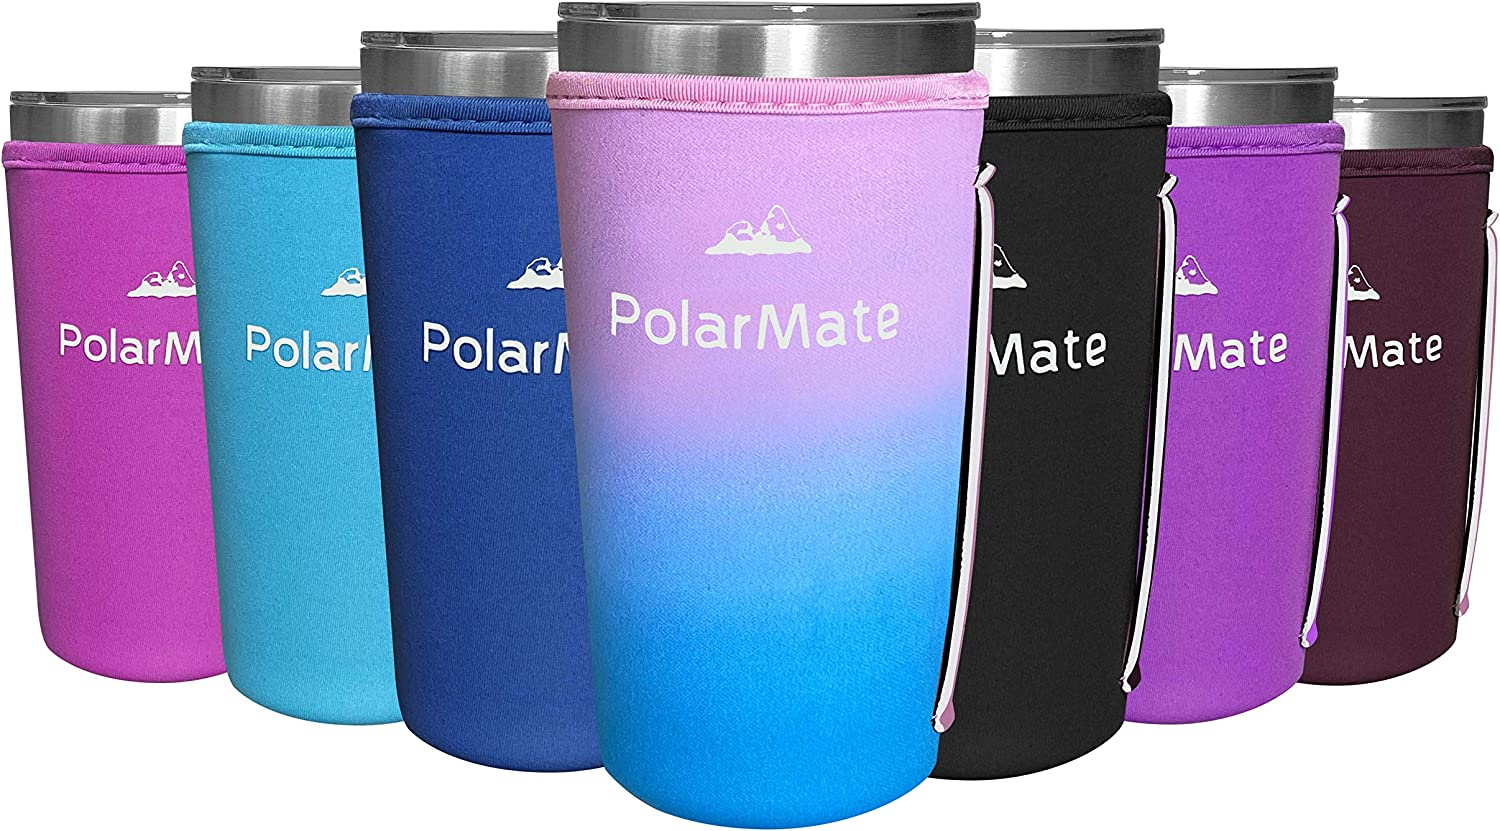 1 Pack Neoprene Tumbler Sleeves with Strap Handle | Insulator Tumblers Sleeve for Cold and Hot Drinks Beverages | Neoprene Tumbler Holder (Ombre, 20 oz)